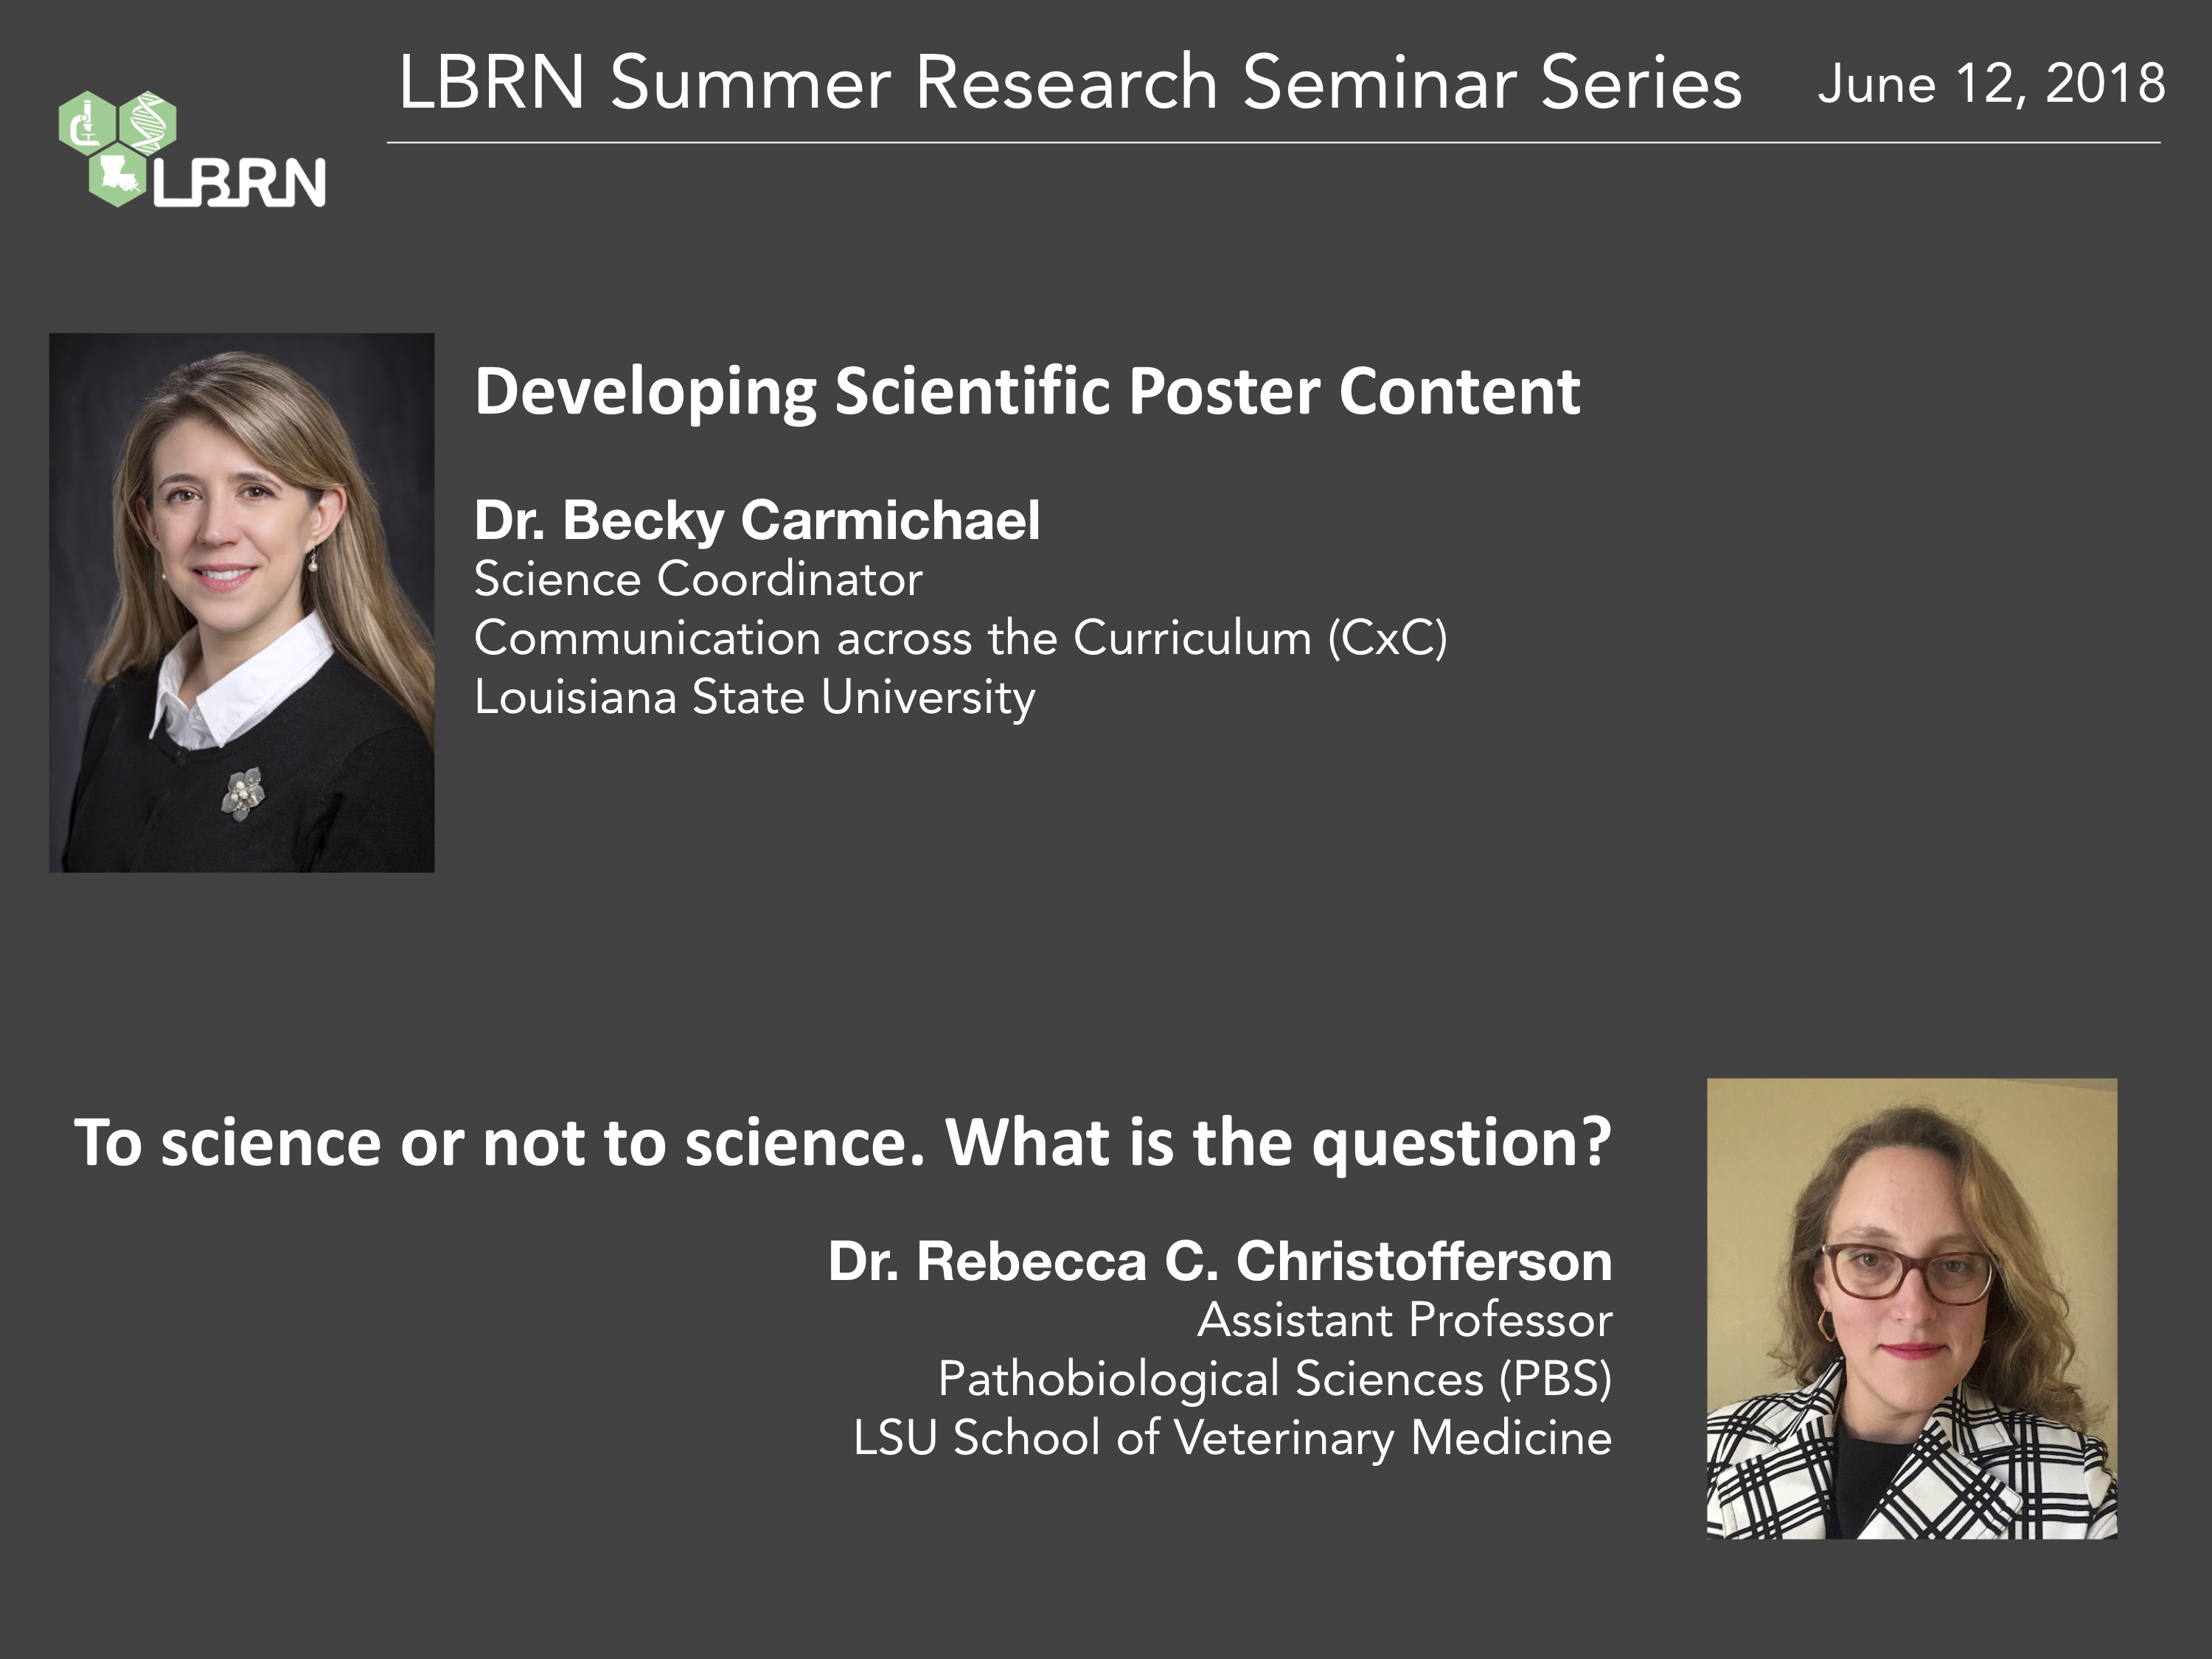 LBRN Summer Research Seminars